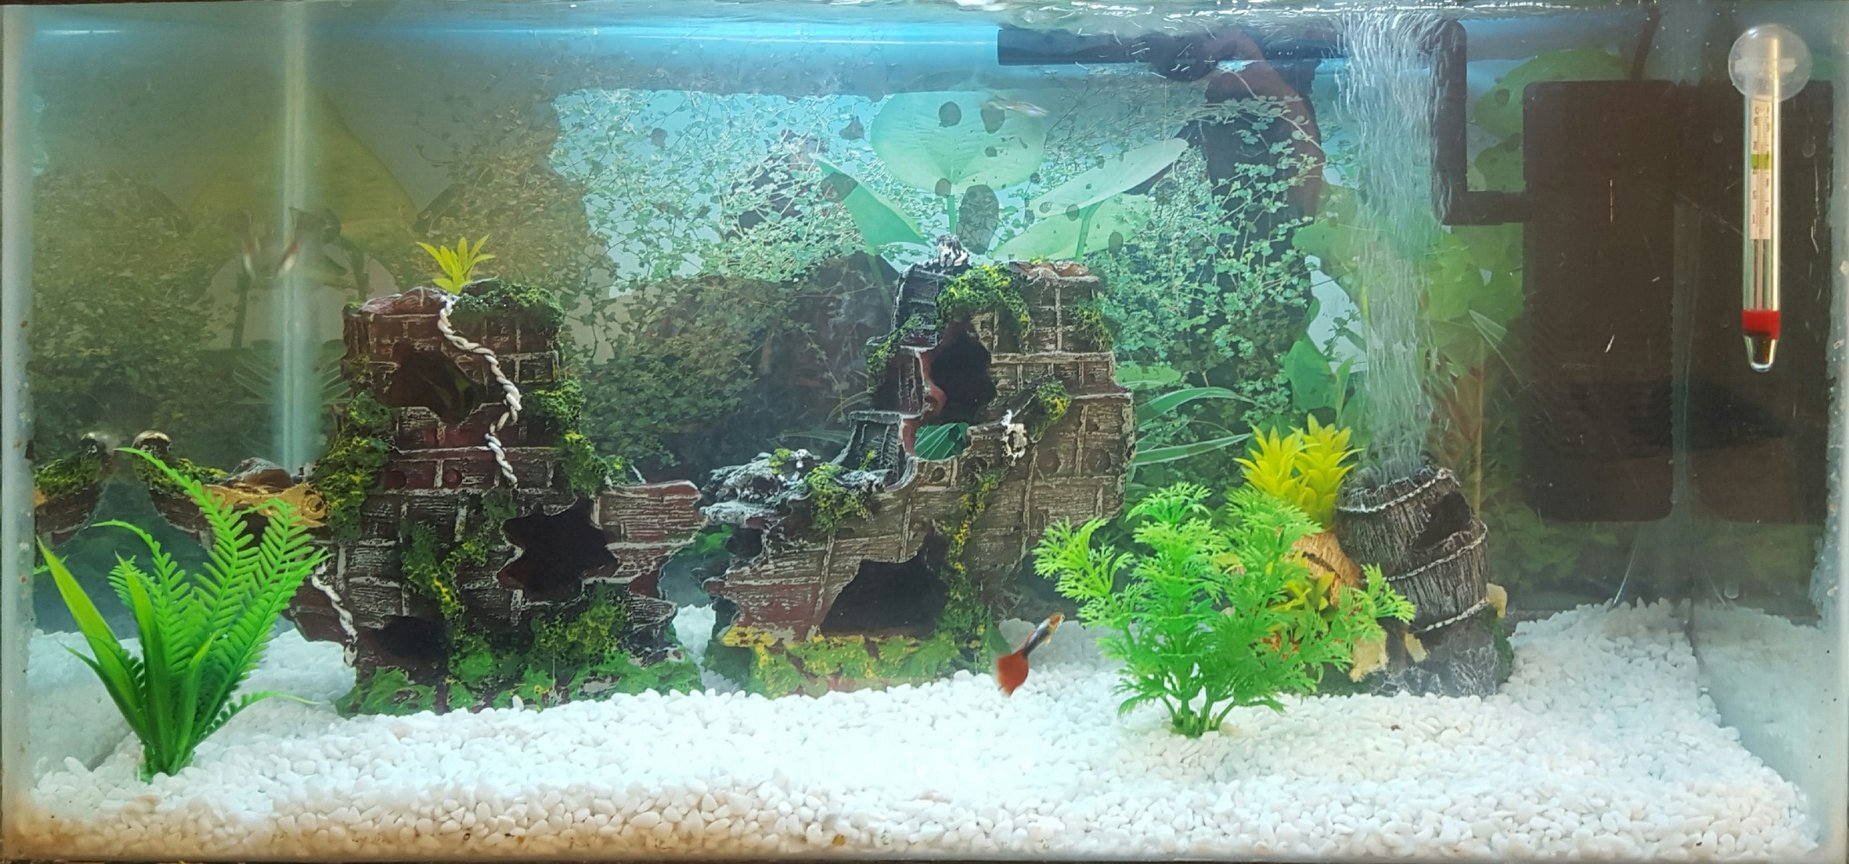 15 gallons freshwater fish tank (mostly fish and non-living decorations) - New tank